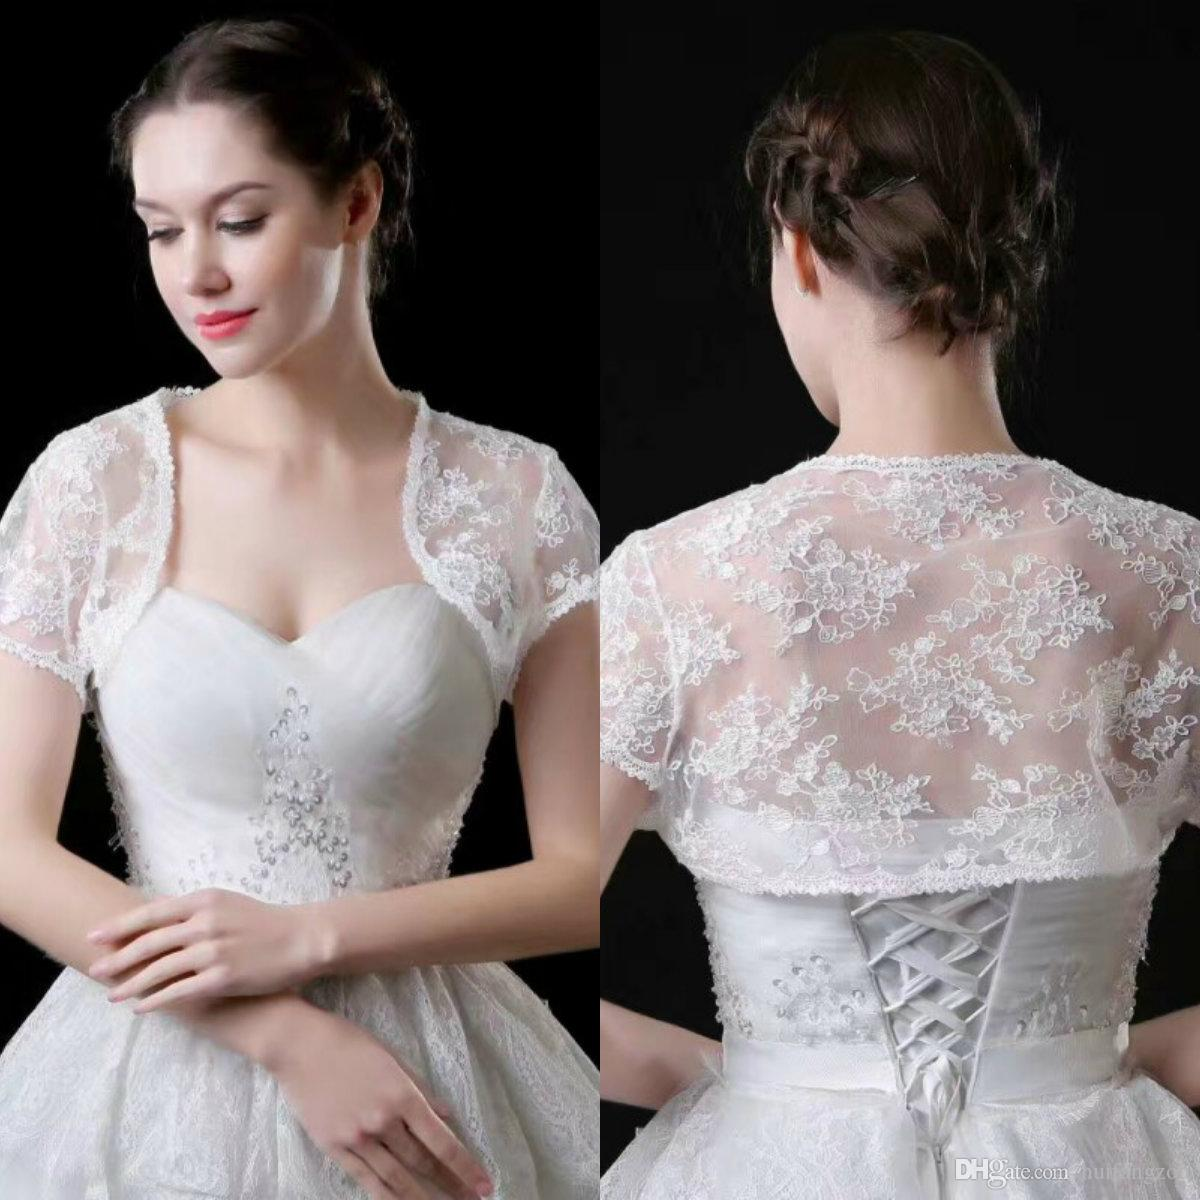 High Quality Bridal Wraps Lace Applique Short Sleeves Sheath Bridal Bolero For Wedding Dresses Custom Made Jacket